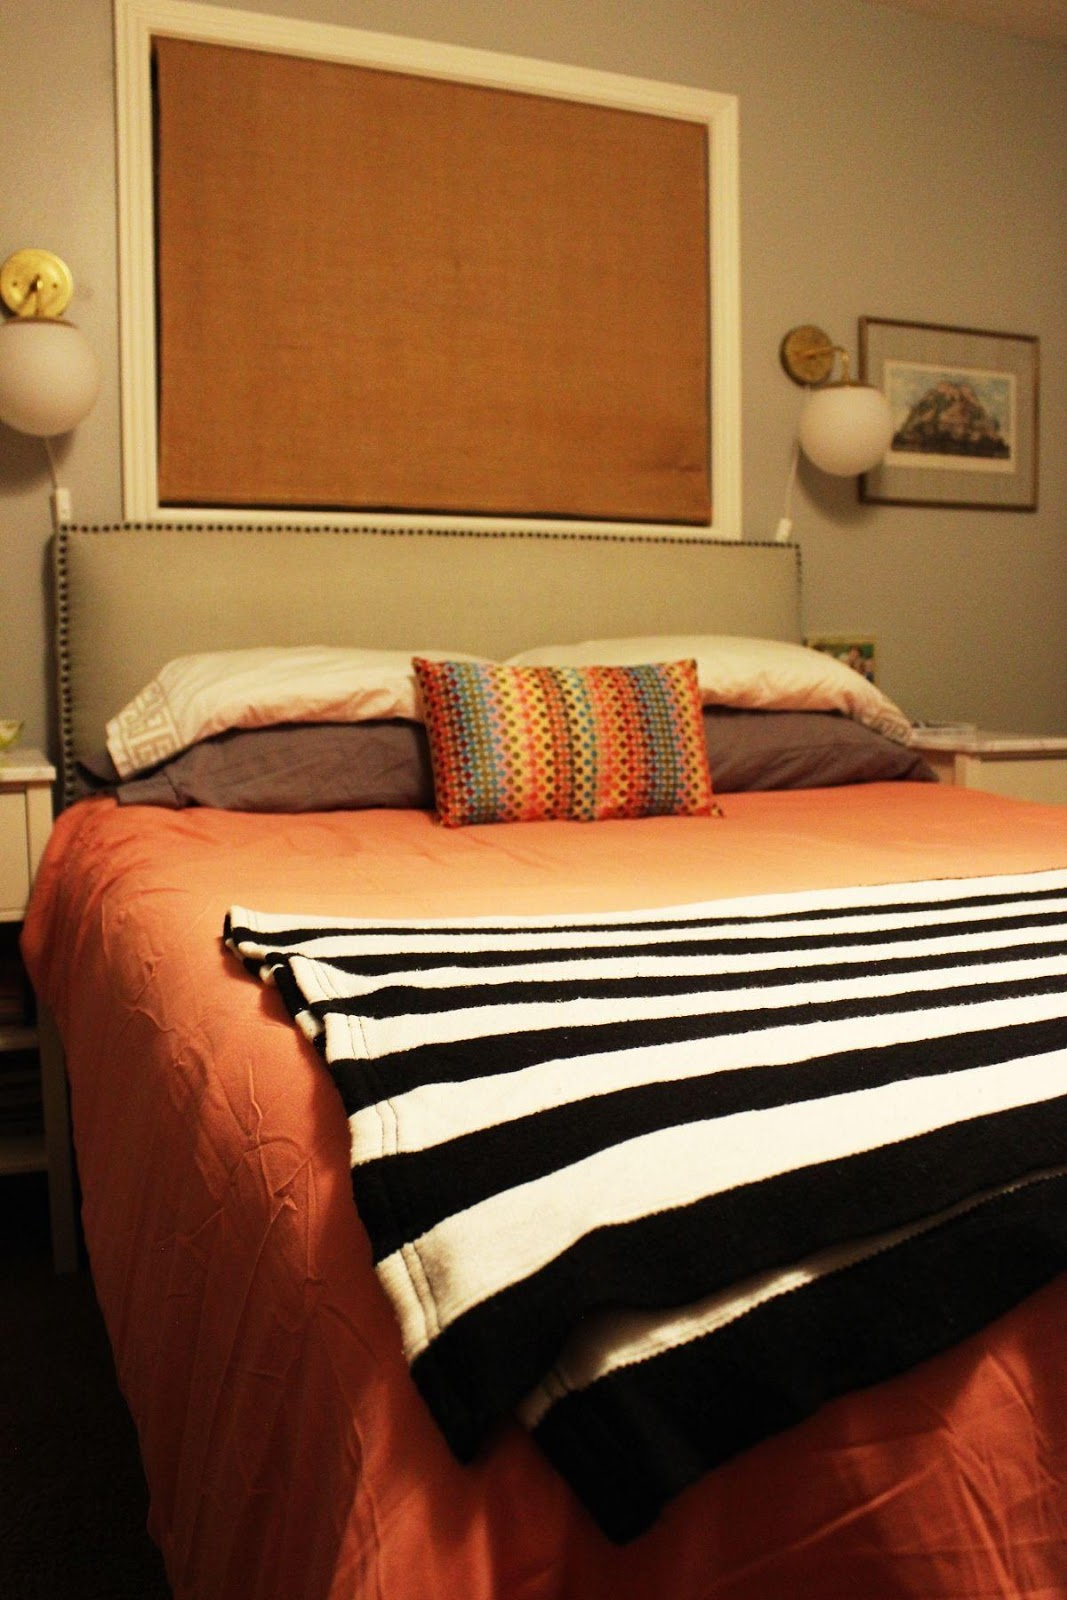 7. Two Flat Sheets Duvet Cover by simphome.com